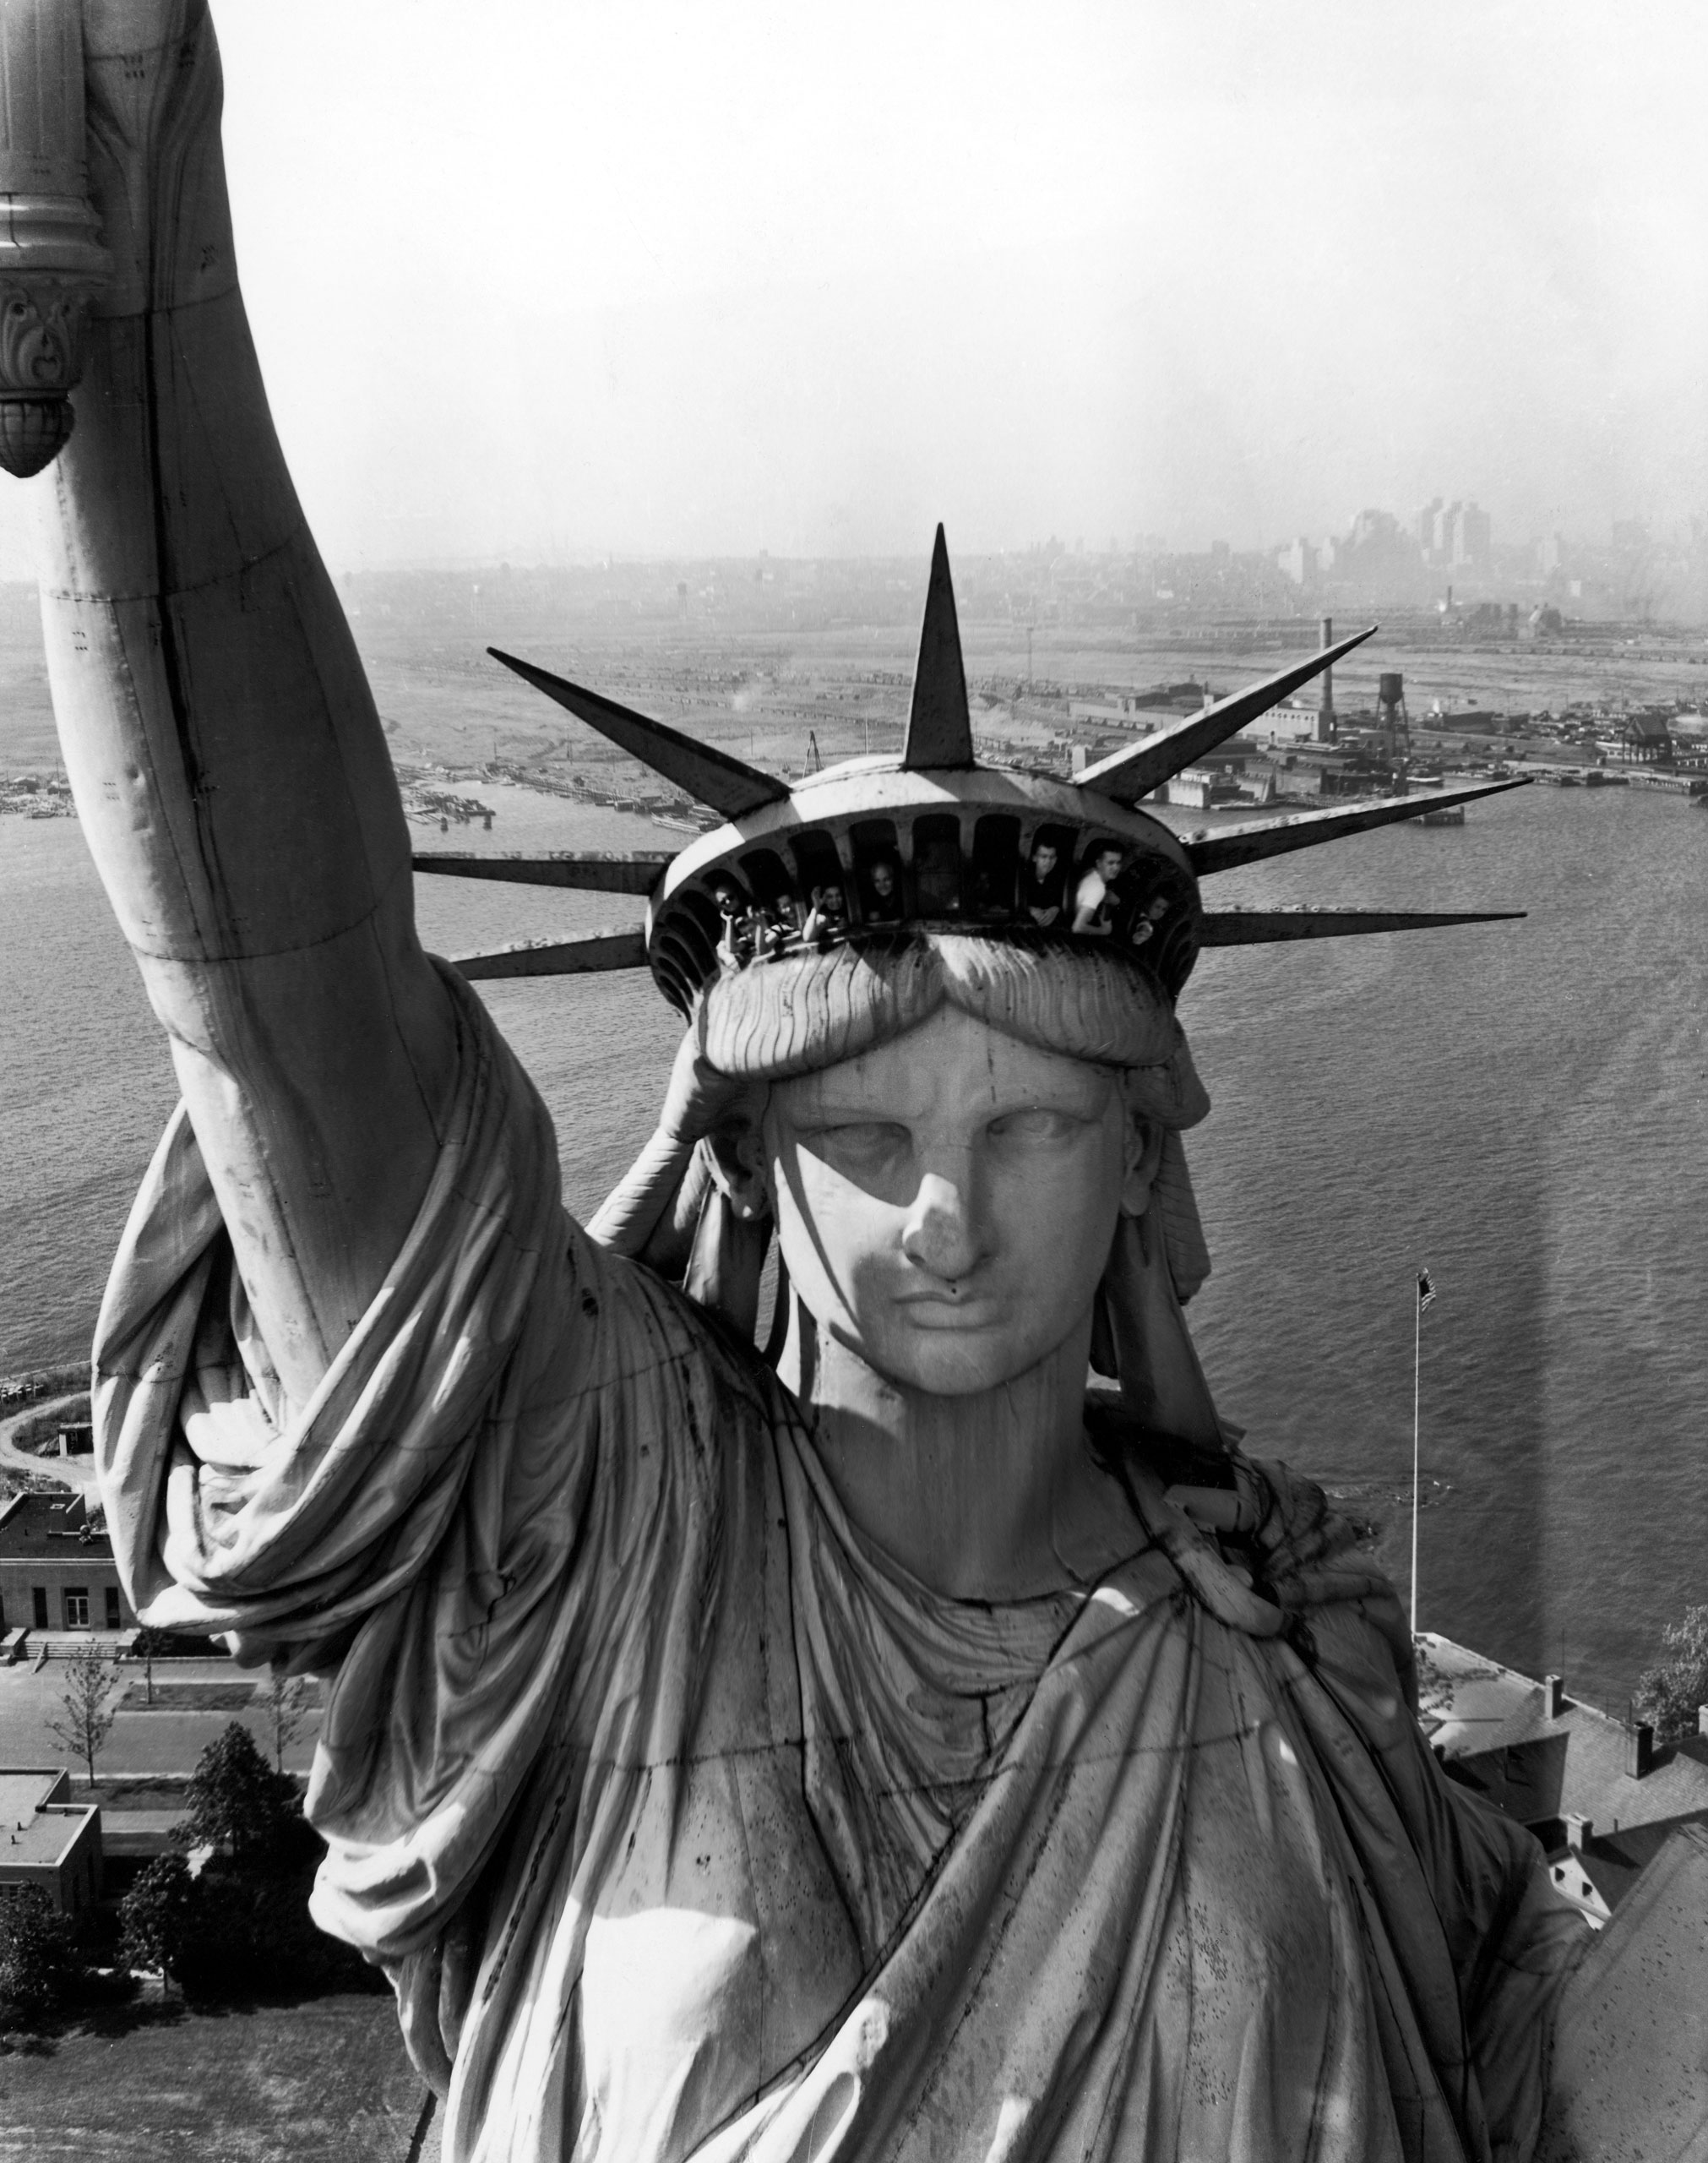 The Statue of Liberty, photographed from a helicopter, 1952.